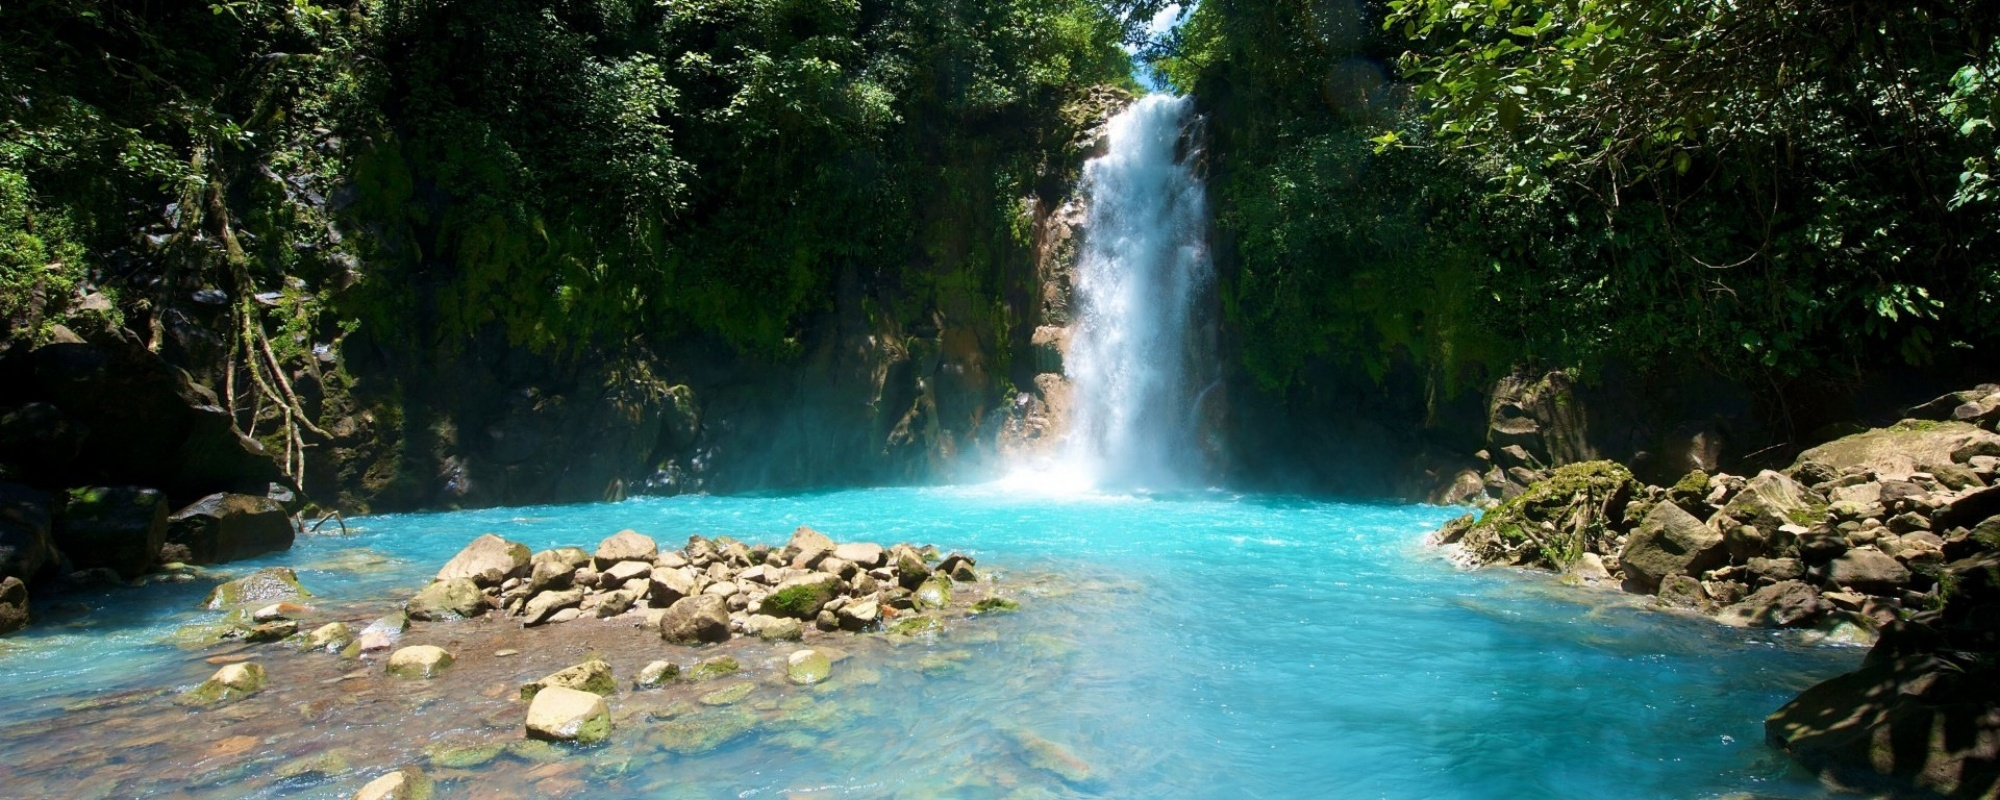 waterfalls_costa_rica